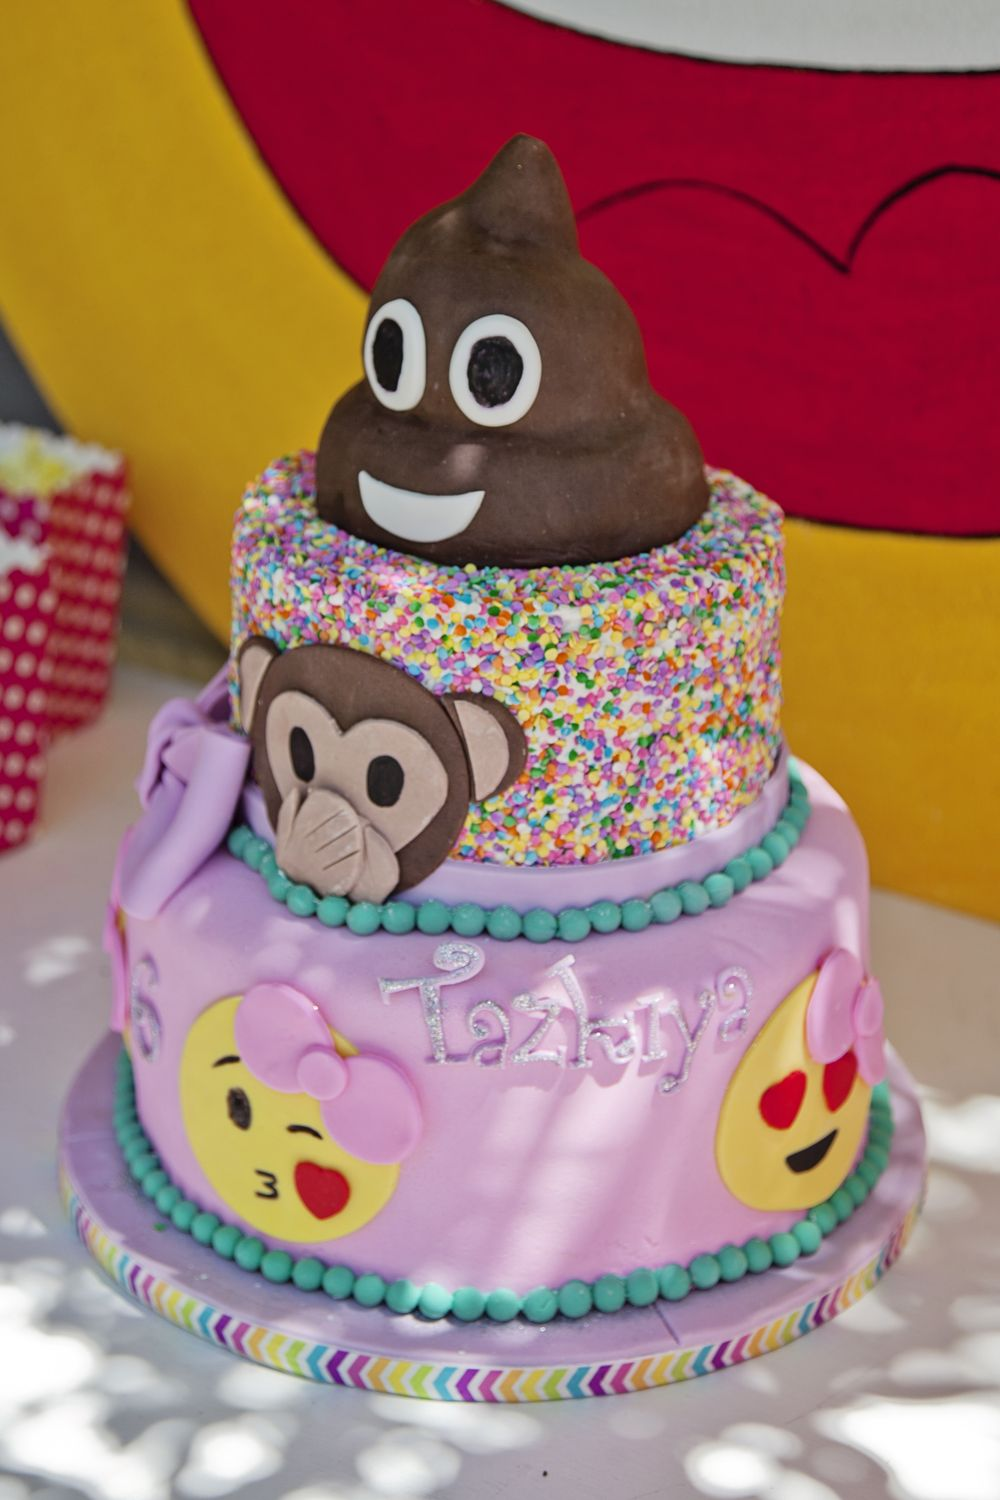 Emoji Theme Party Cake Ideas Poop Topper 10th Birthday Parties